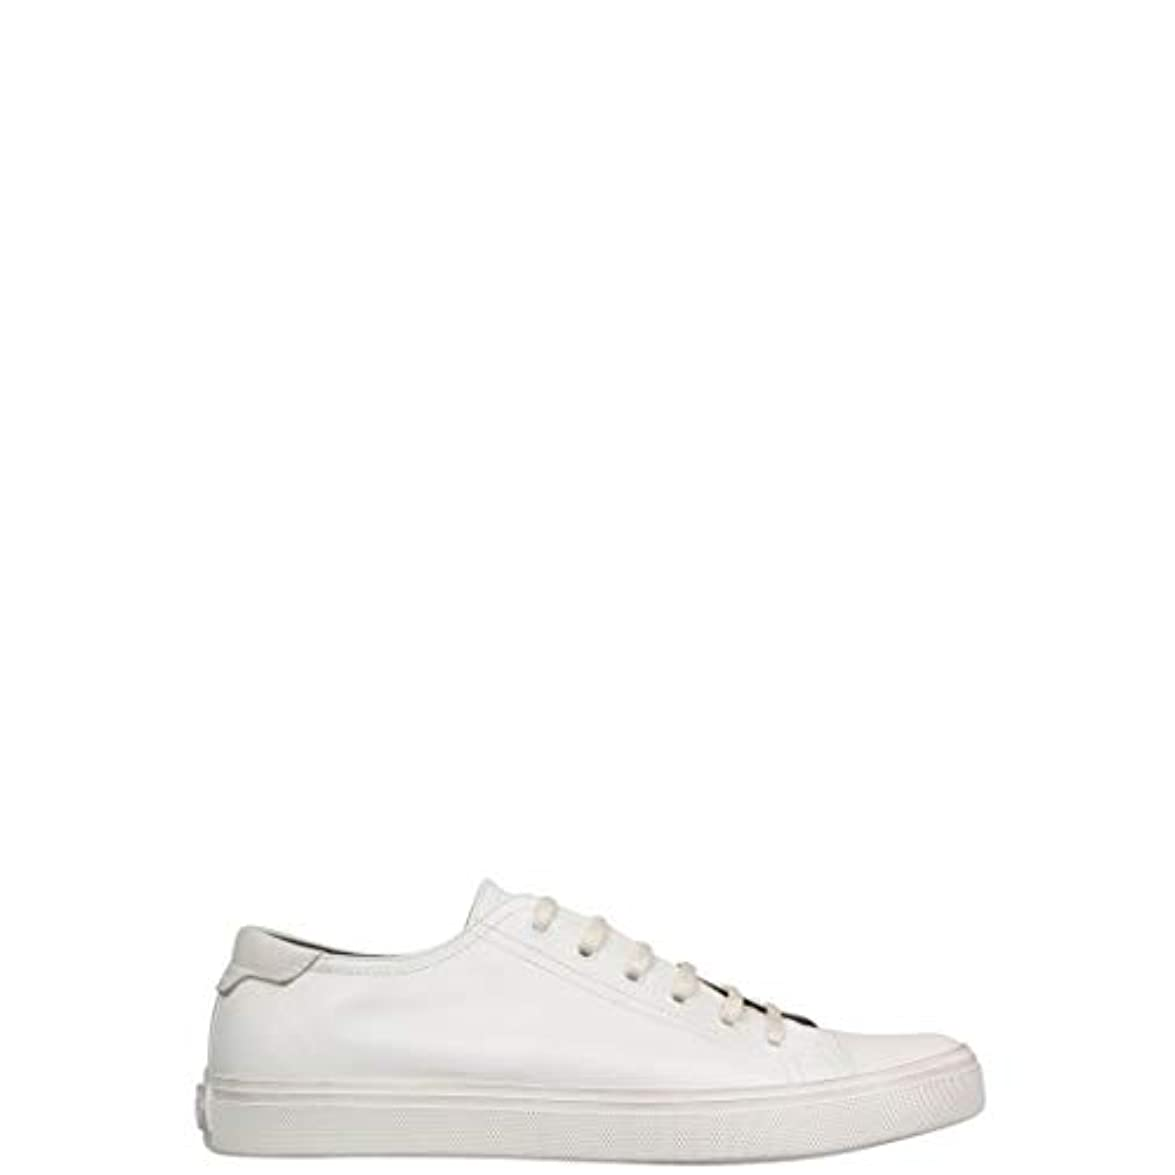 Saint Laurent Sneakers Donna 52984108g109030 Pelle Bianco